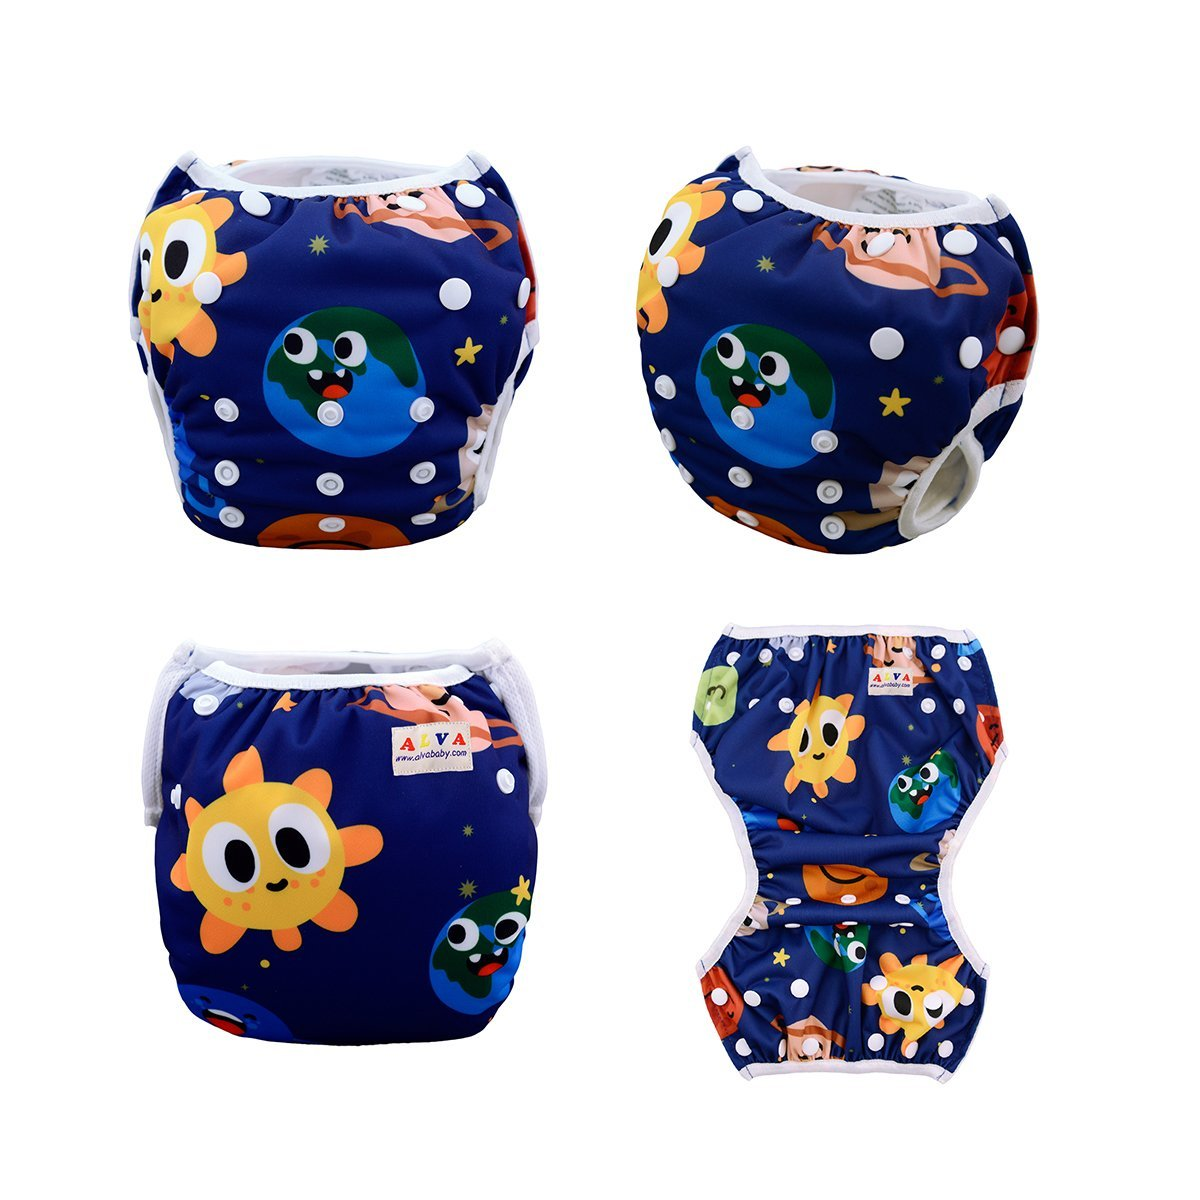 ALVABABY Swim Diapers Reuseable Washable Adjustable 0-36 mo.For Infants Toddlers Boys Girls 2 Pack One Size Swimming Lesson Baby Shower Gifts SWD29-31-CA